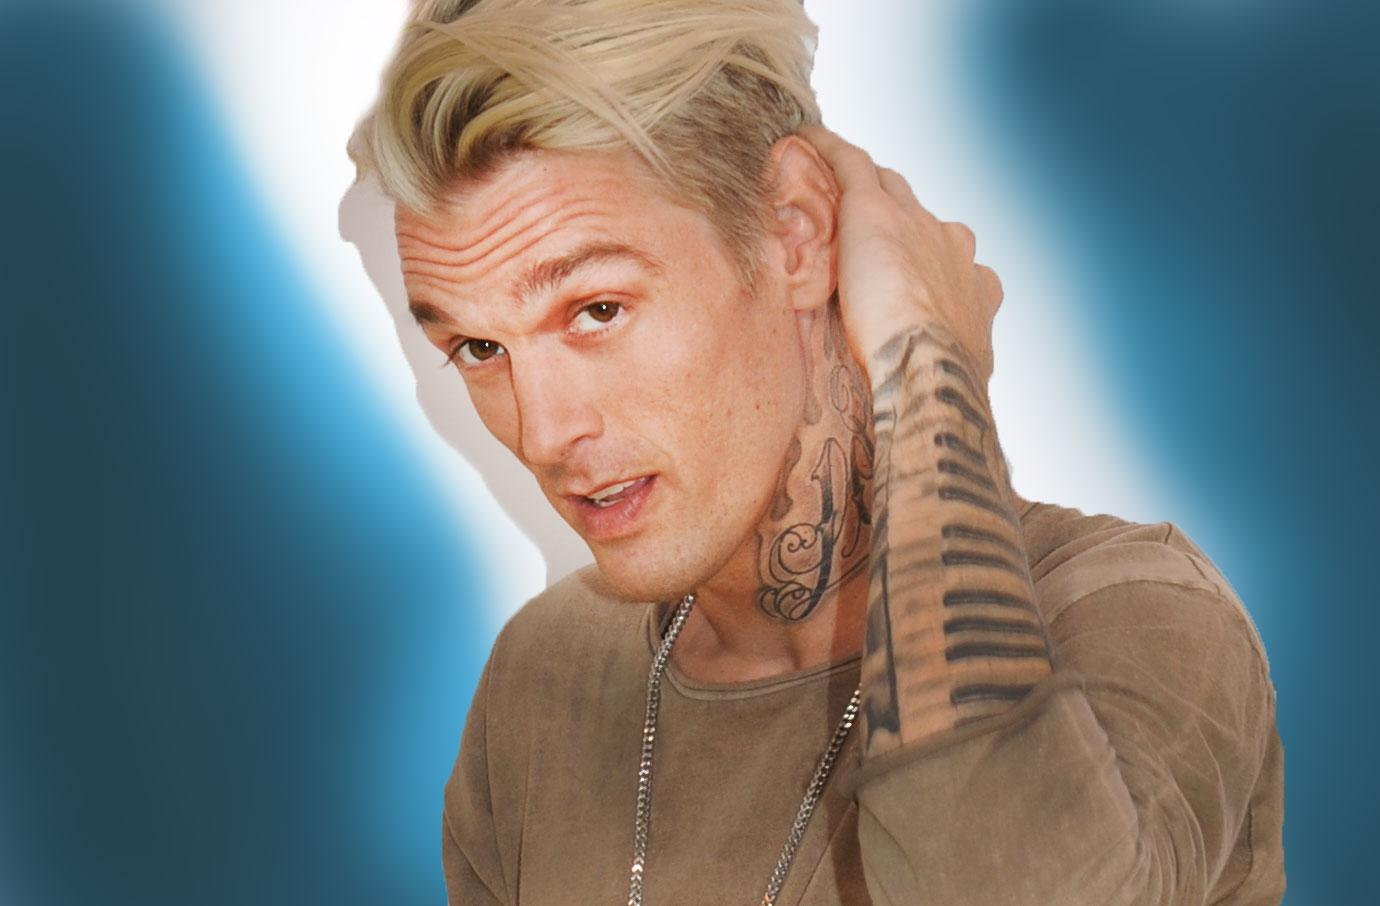 Aaron Carter Hospitalized After Being Body Shamed By Fans